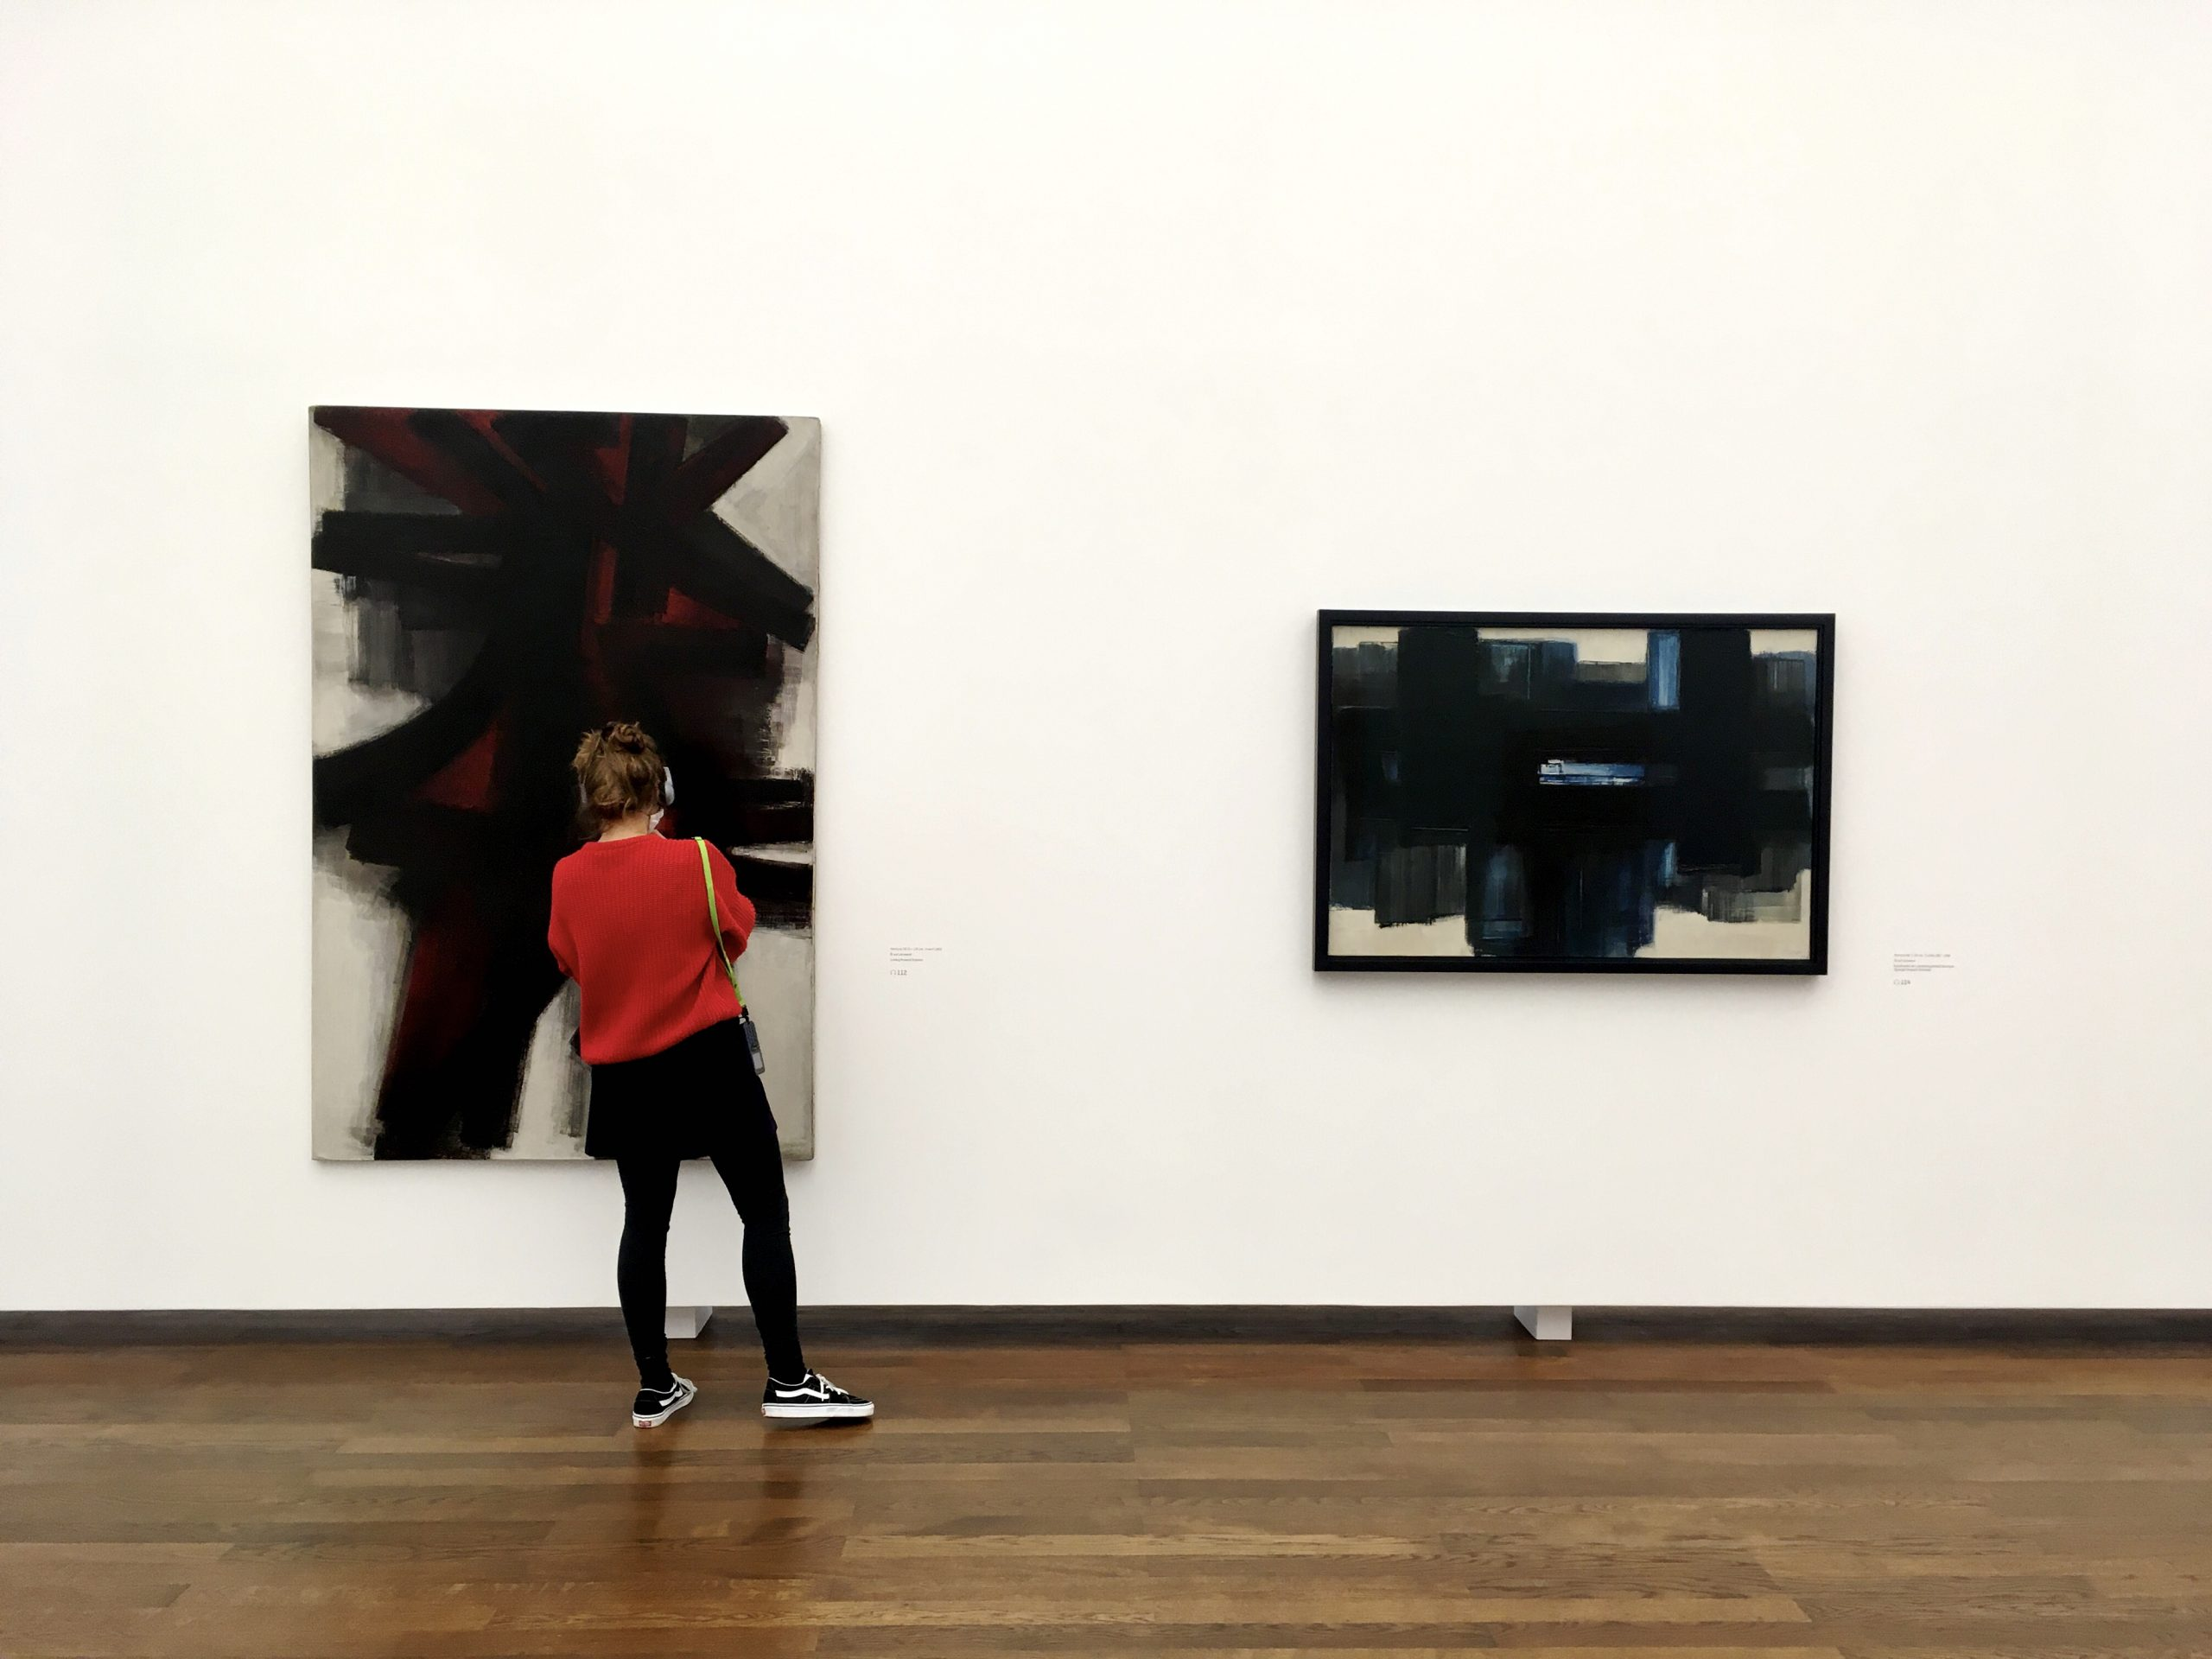 soulages_frieder burda_raum_50er